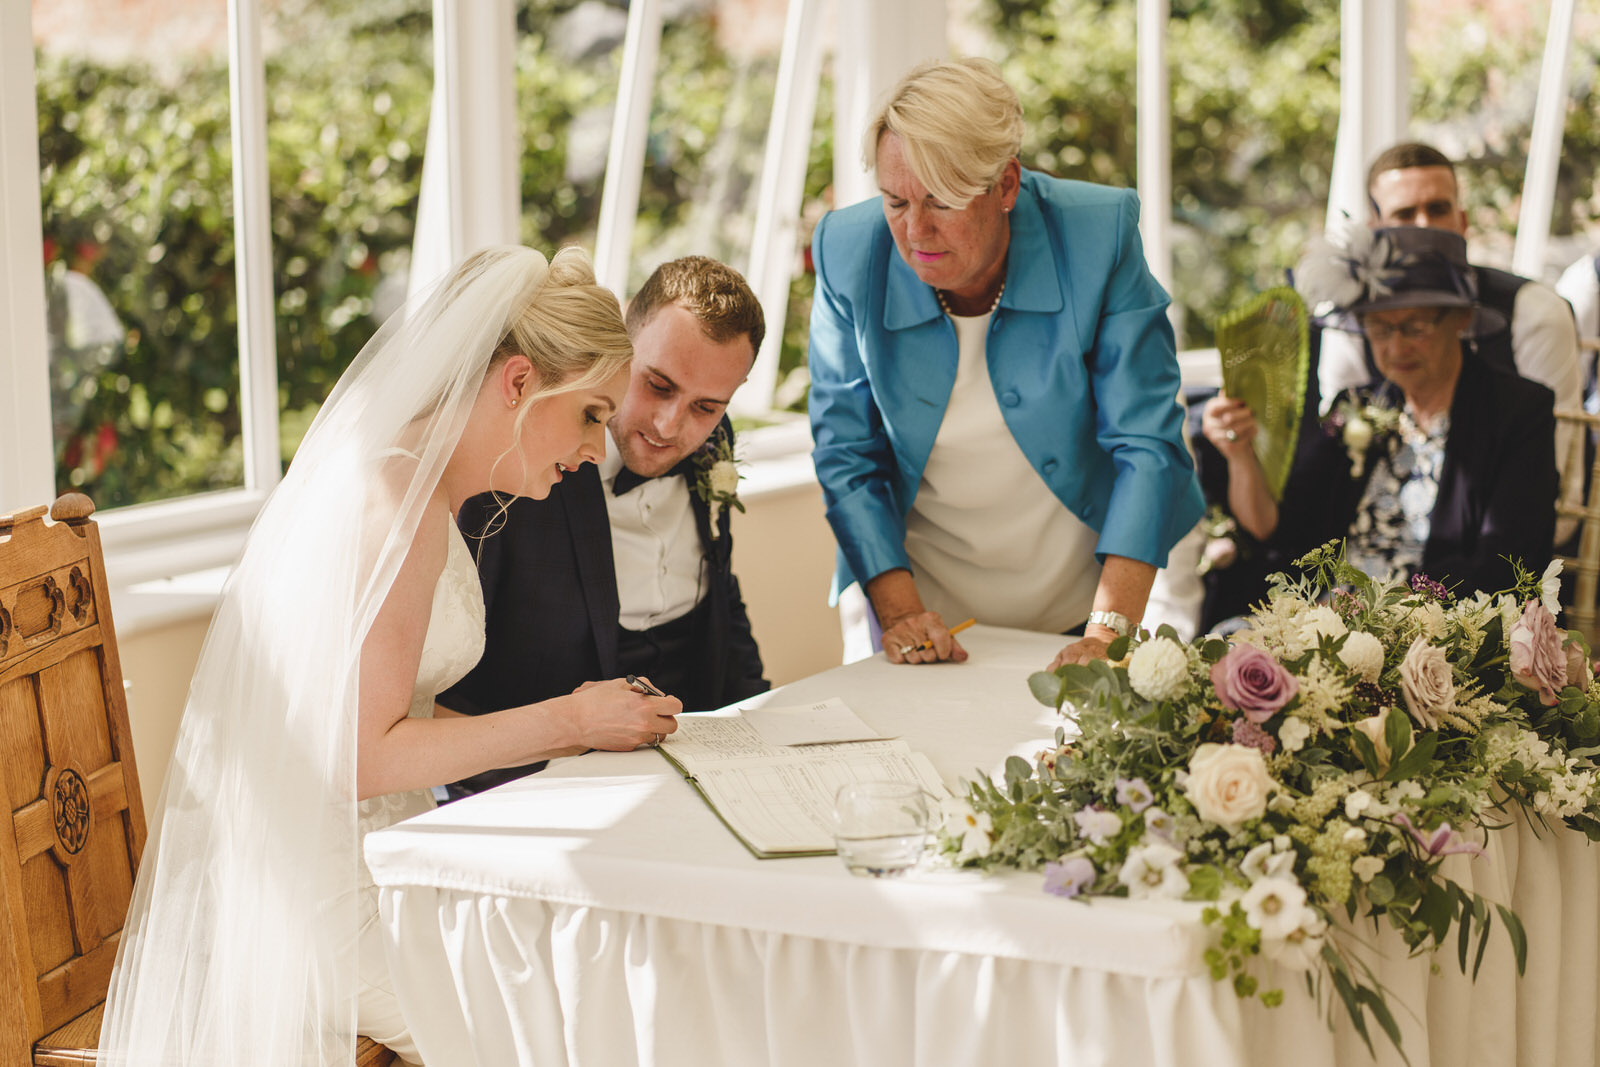 the bride signs the marriage register as the registrar and groom look on